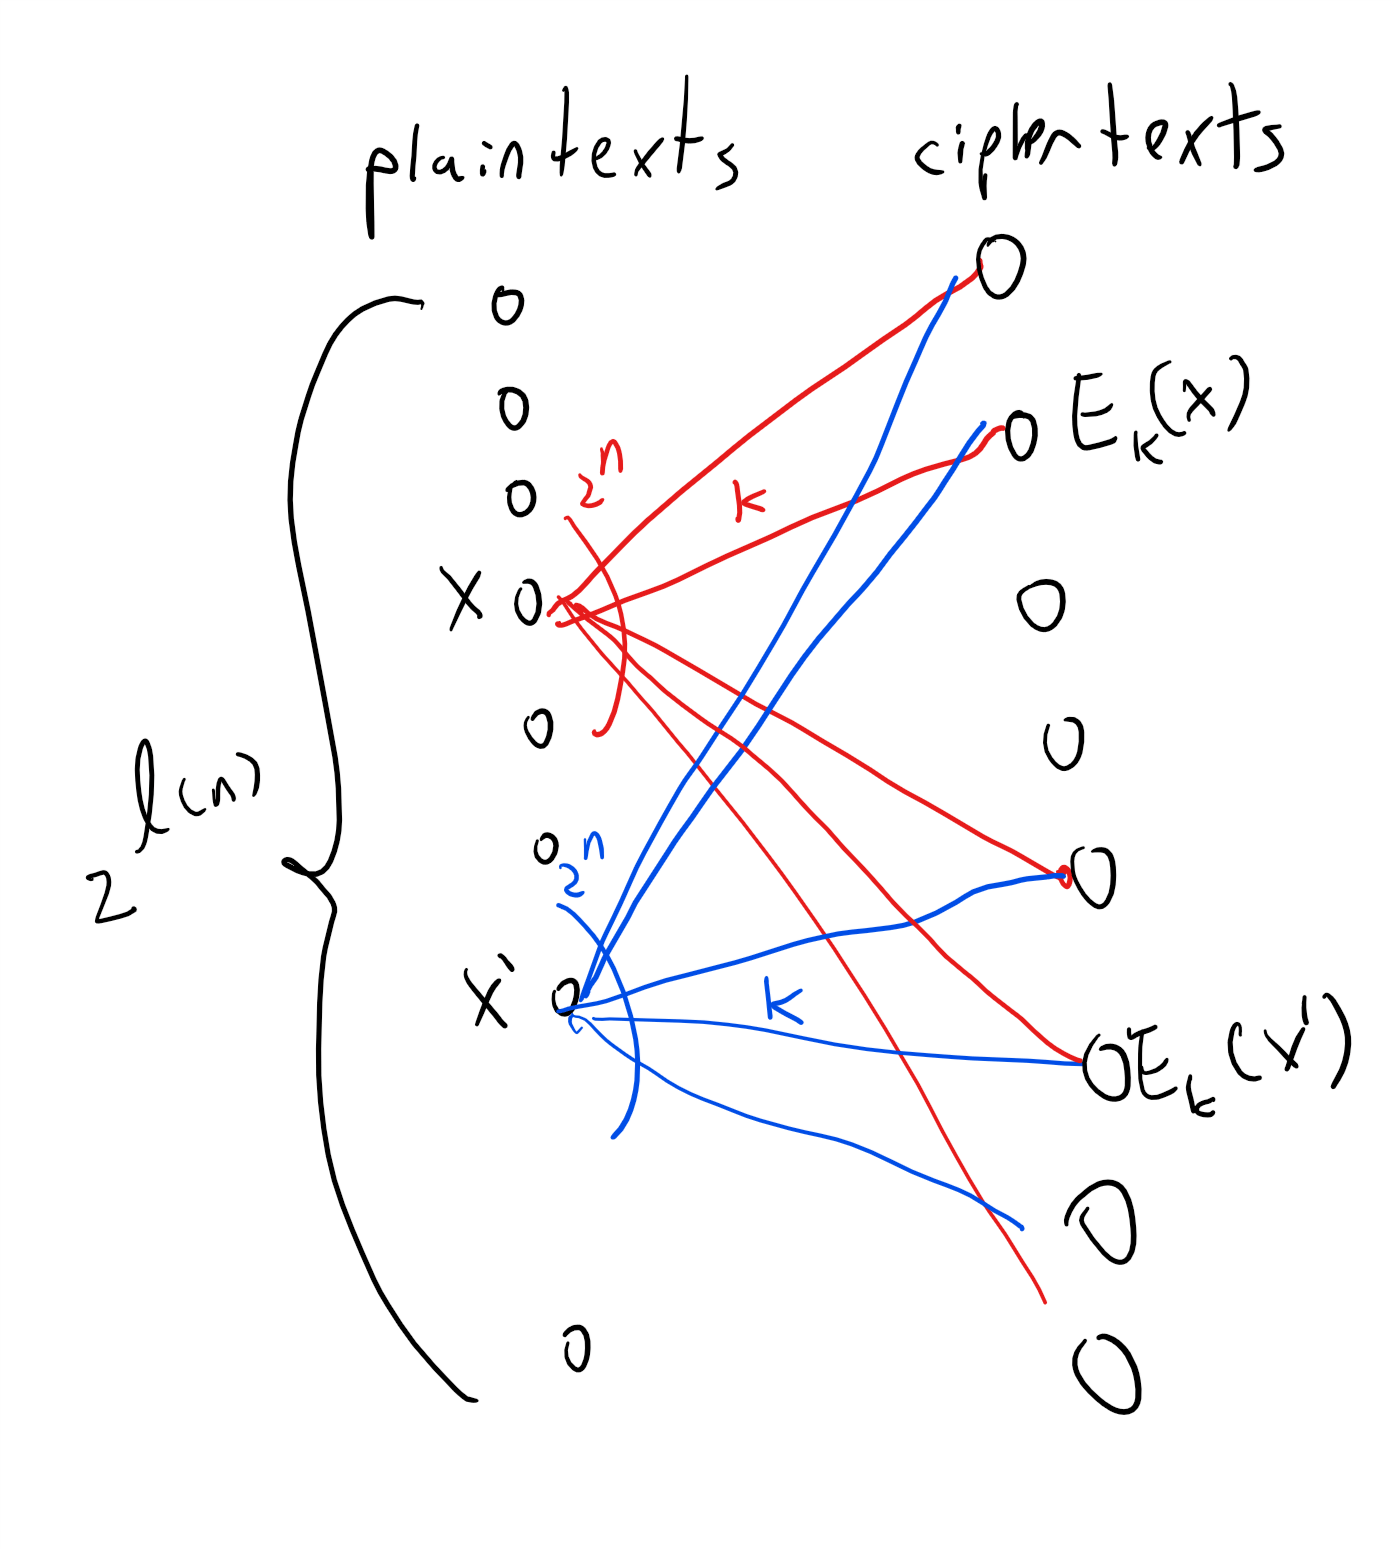 1.9: For any key length n, we can visualize an encryption scheme (E,D) as a graph with a vertex for every one of the 2^{L(n)} possible plaintexts and for every one of the ciphertexts in \{0,1\}^* of the form E_k(x) for k\in \{0,1\}^n and x\in \{0,1\}^{L(n)}. For every plaintext x and key k, we add an edge labeled k between x and E_k(x). By the validity condition, if we pick any fixed key k, the map x \mapsto E_k(x) must be one-to-one. The condition of perfect secrecy simply corresponds to requiring that every two plaintexts x and x' have exactly the same set of neighbors (or multi-set, if there are parallel edges).